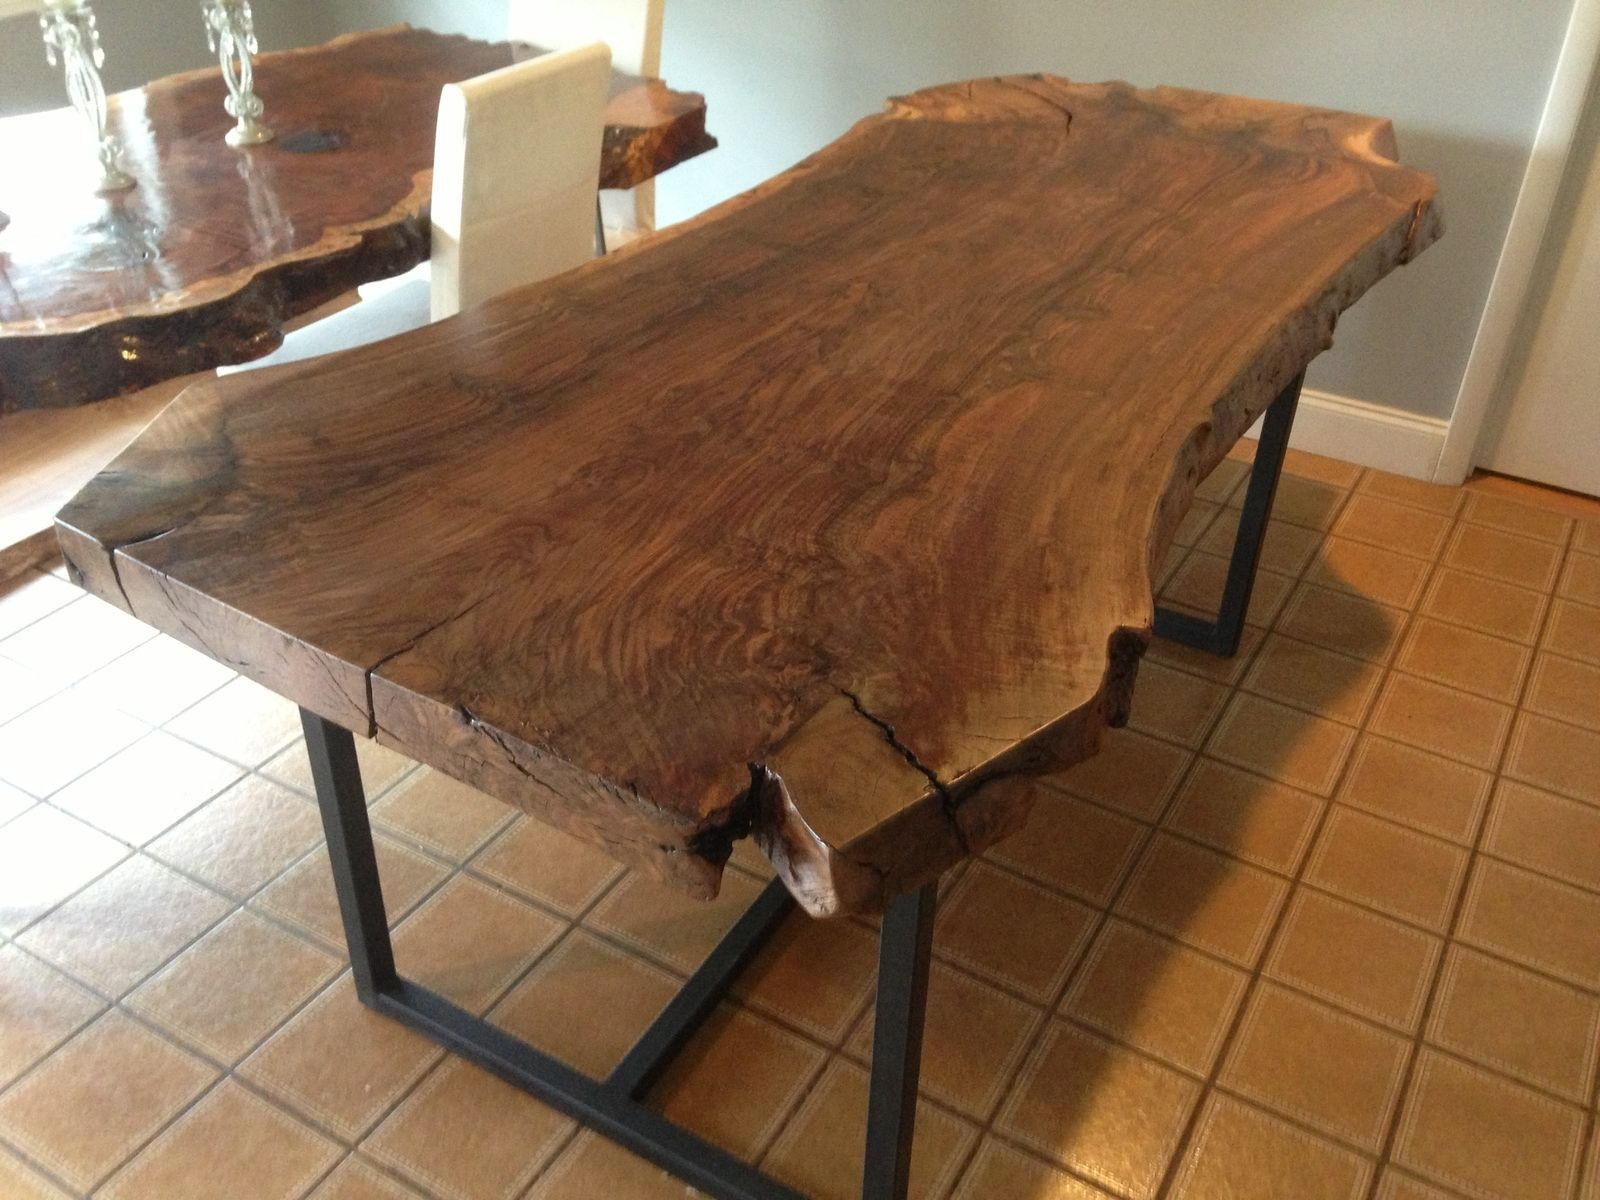 handmade live edge claro walnut dining table by ozma design. Black Bedroom Furniture Sets. Home Design Ideas